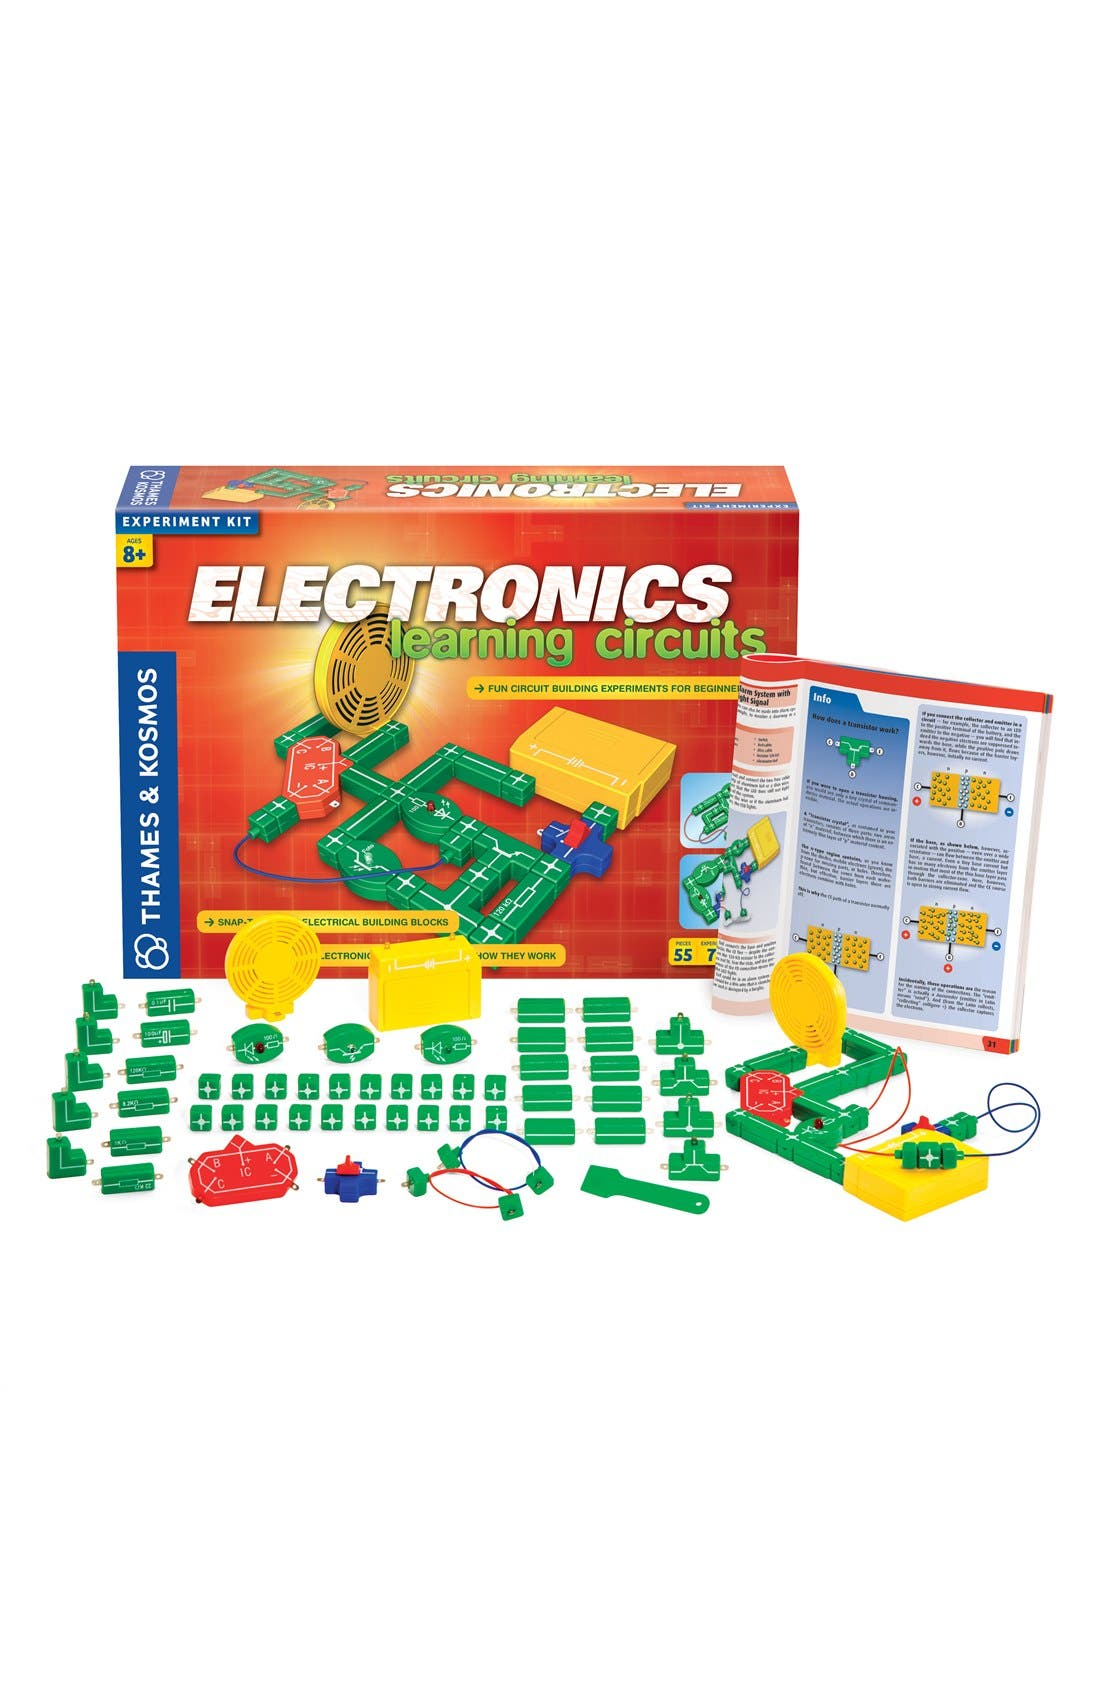 Main Image - Thames & Kosmos 'Electronics Learning Circuits' Experiment Kit